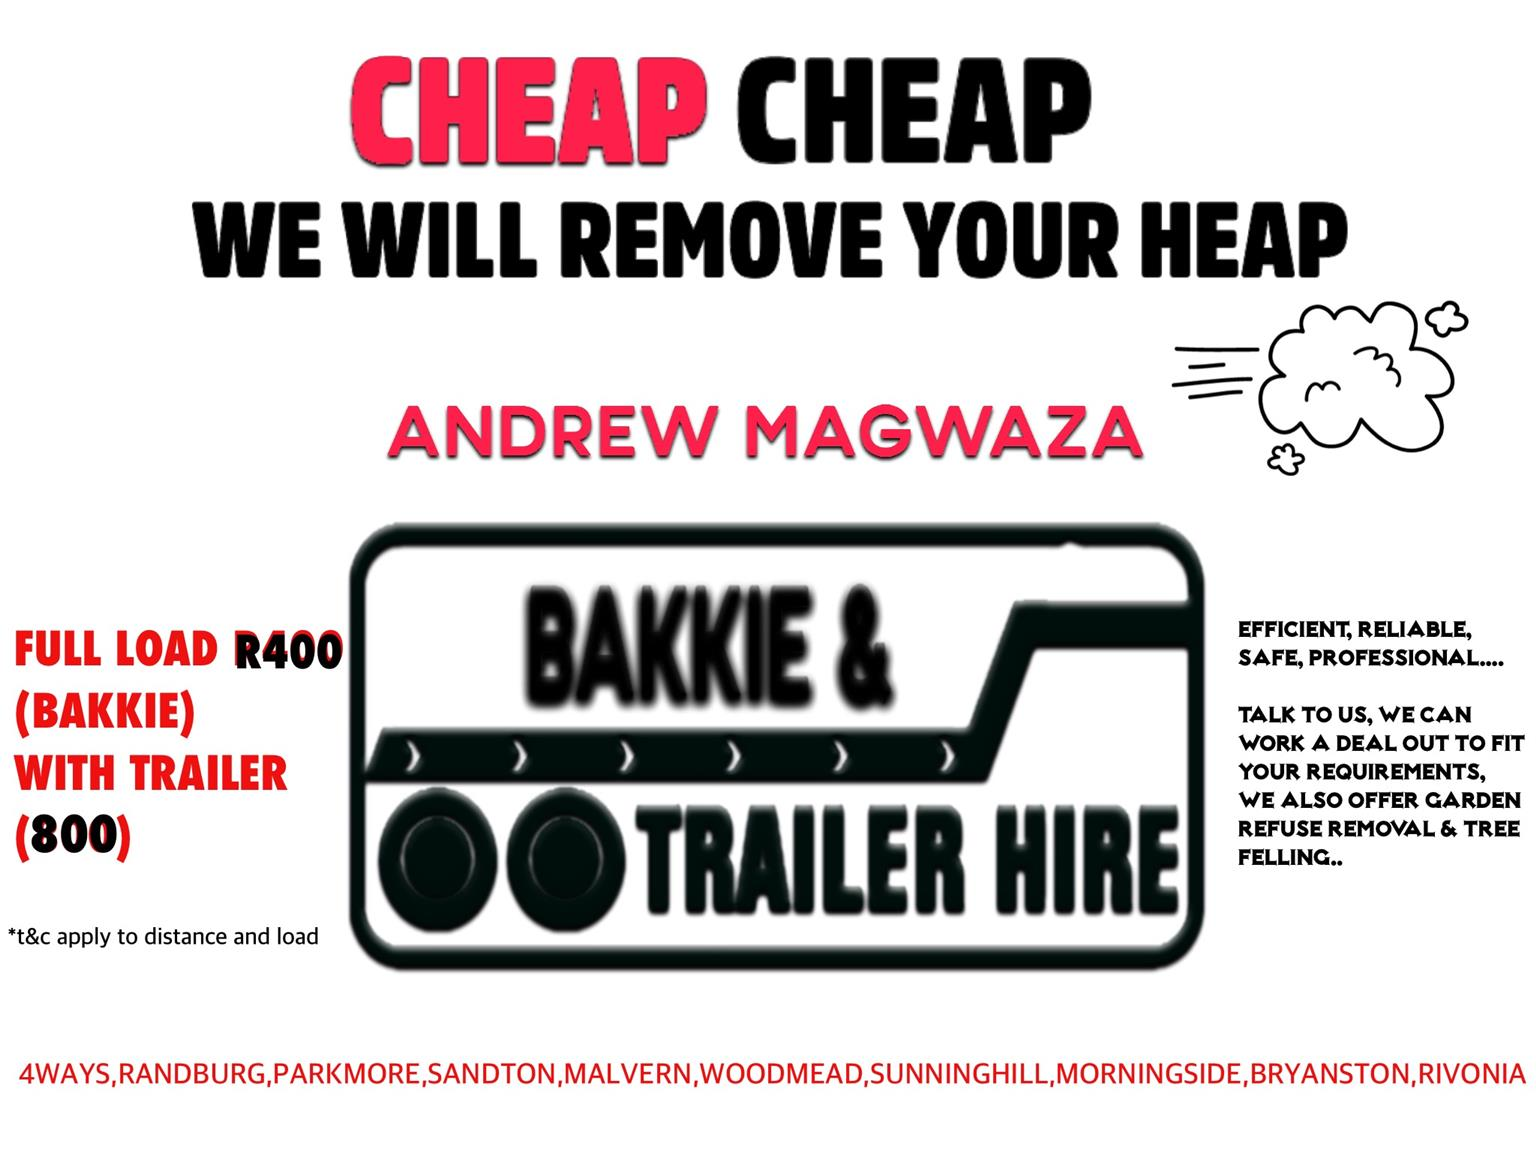 Cheap Cheap we will remove your heap